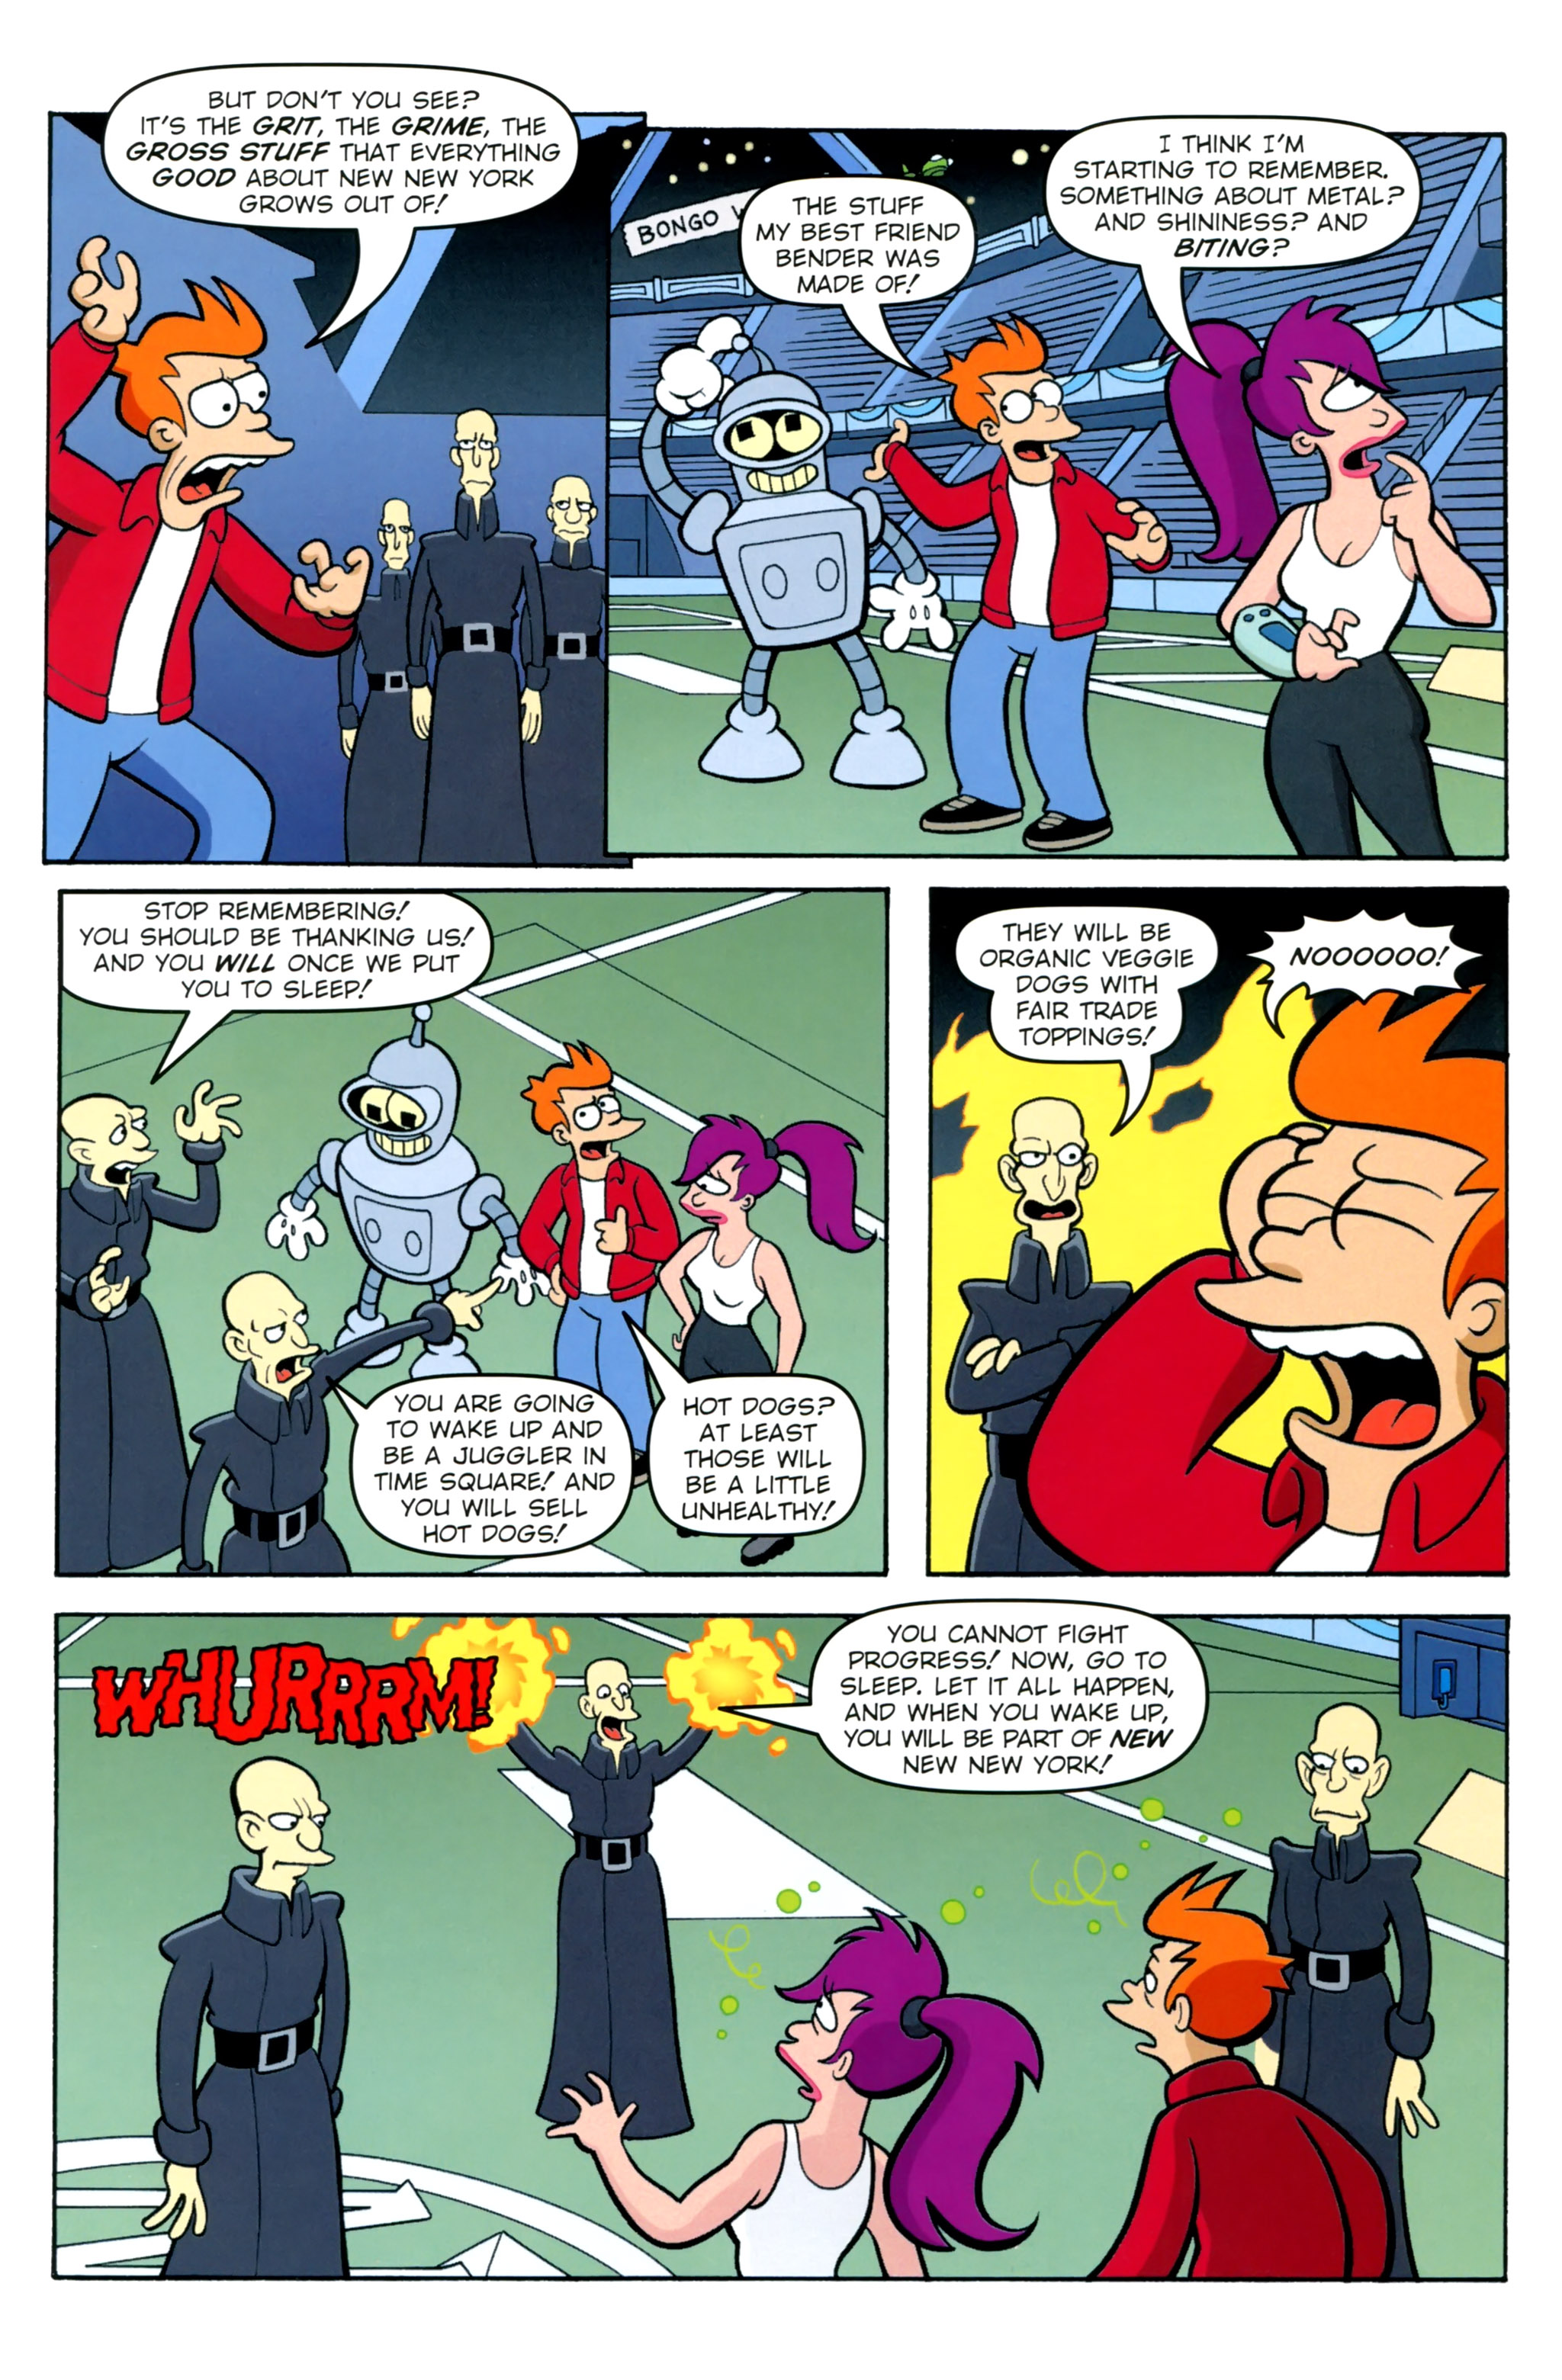 Futurama Comics futurama comics #77 - read futurama comics issue #77 page 22